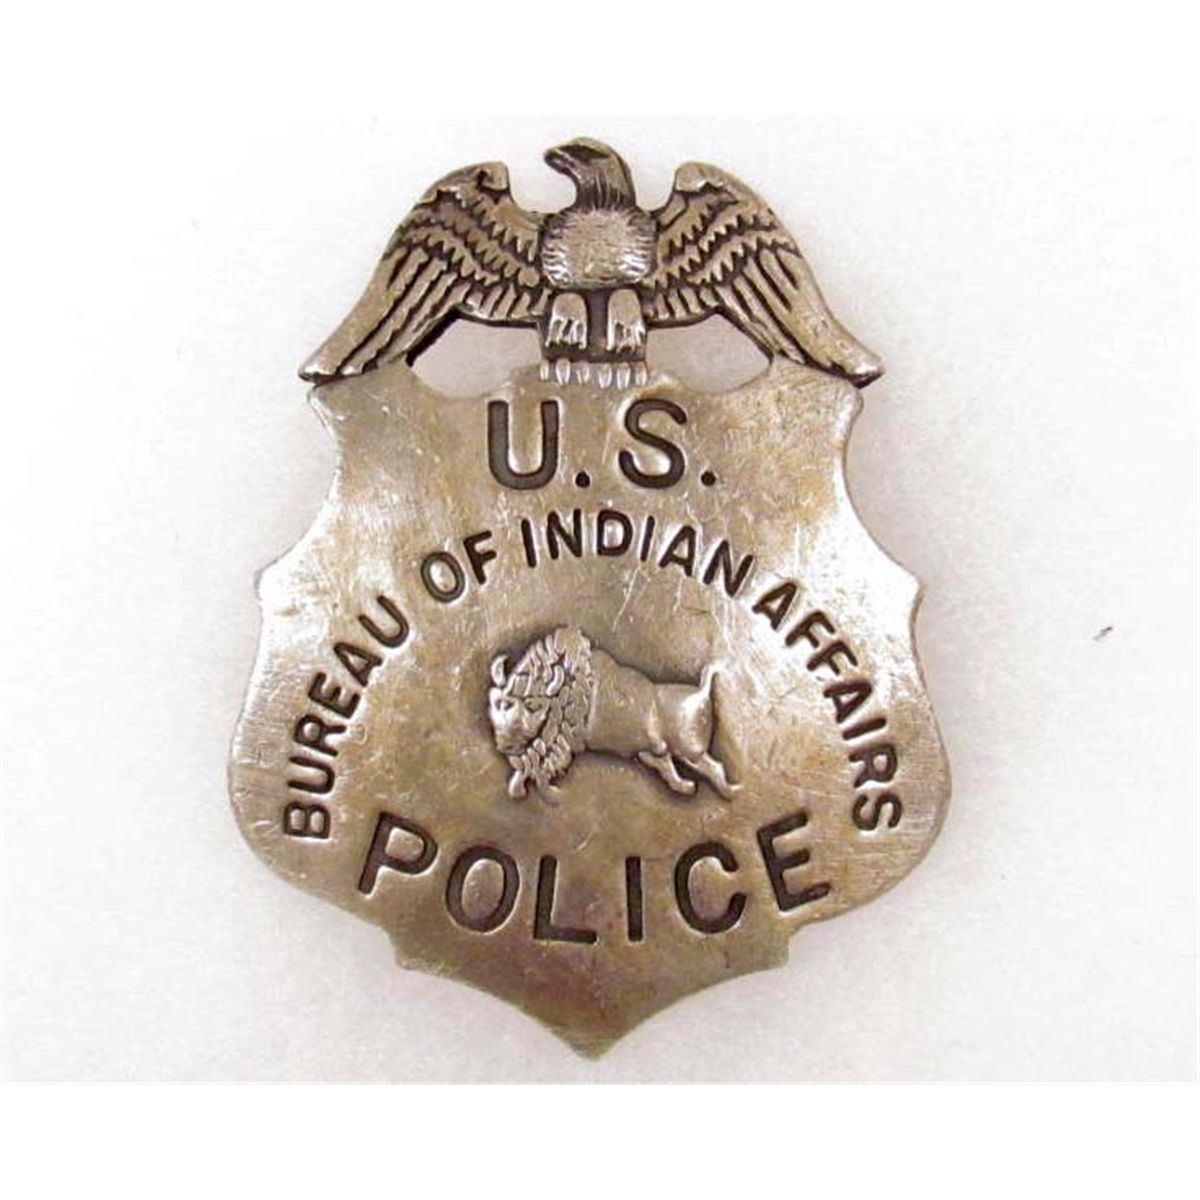 Bureau of indian affairs police badge for Bureau of indian affairs